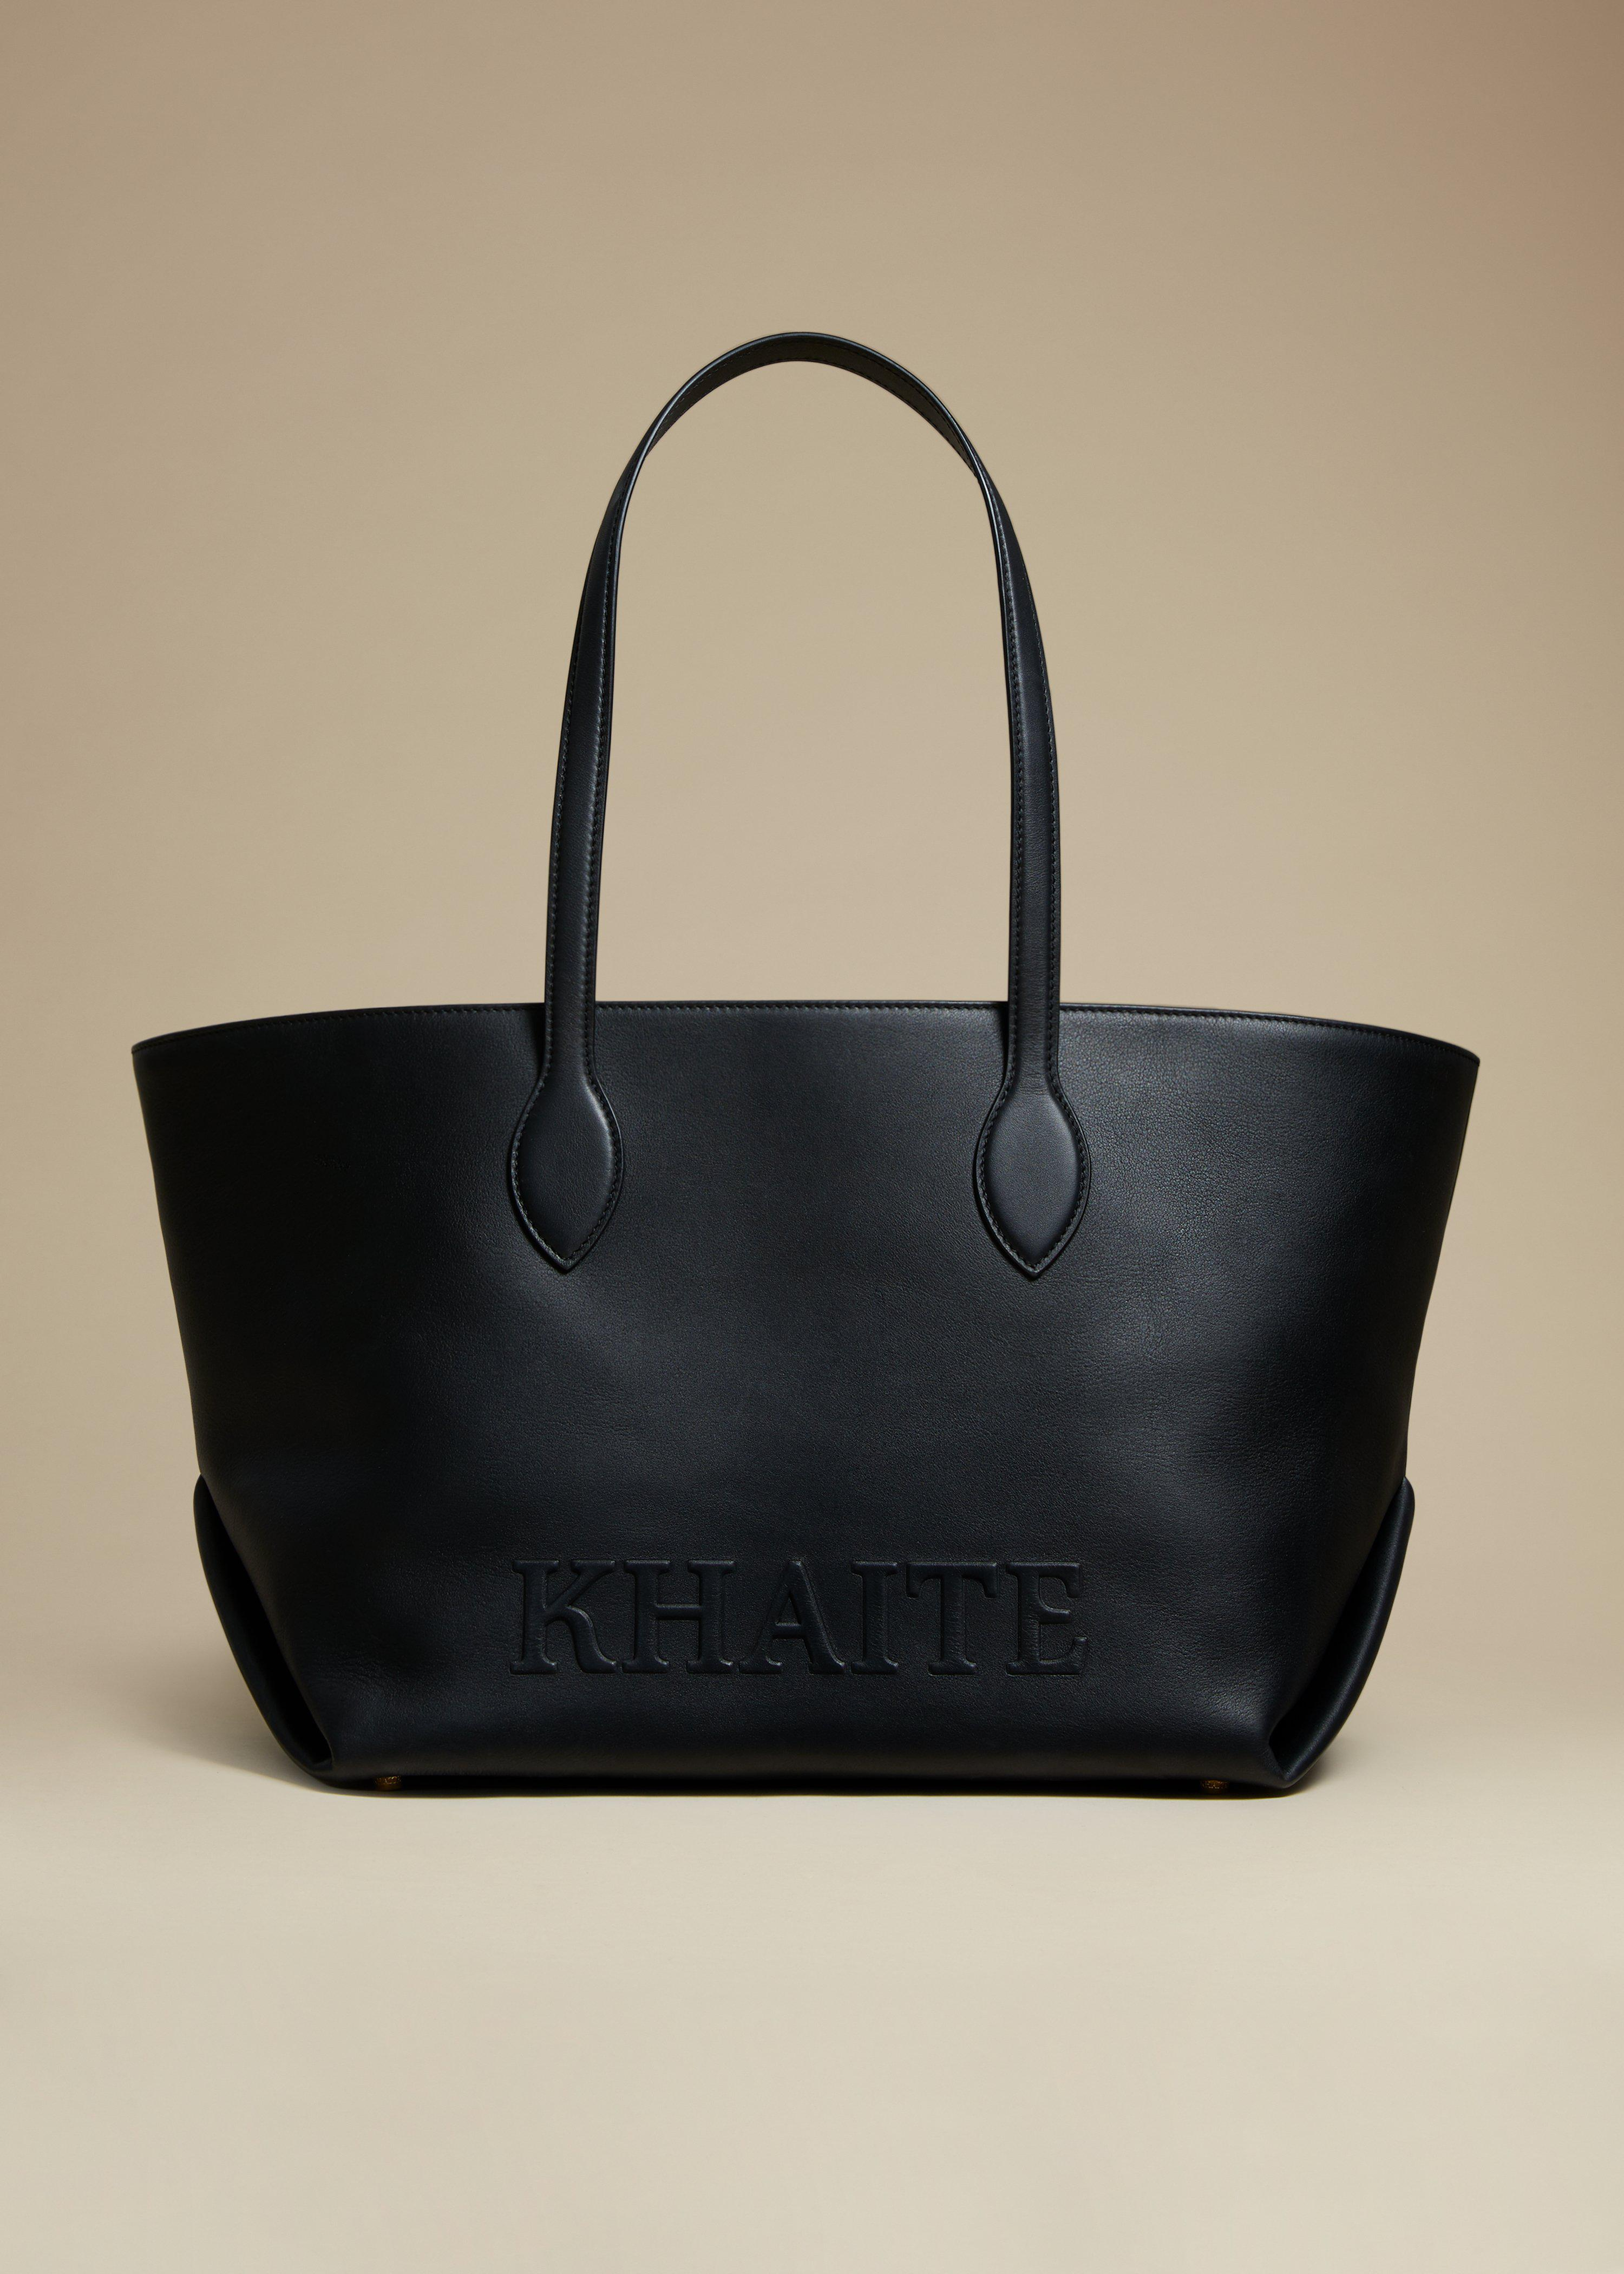 The Florence Tote in Black Leather